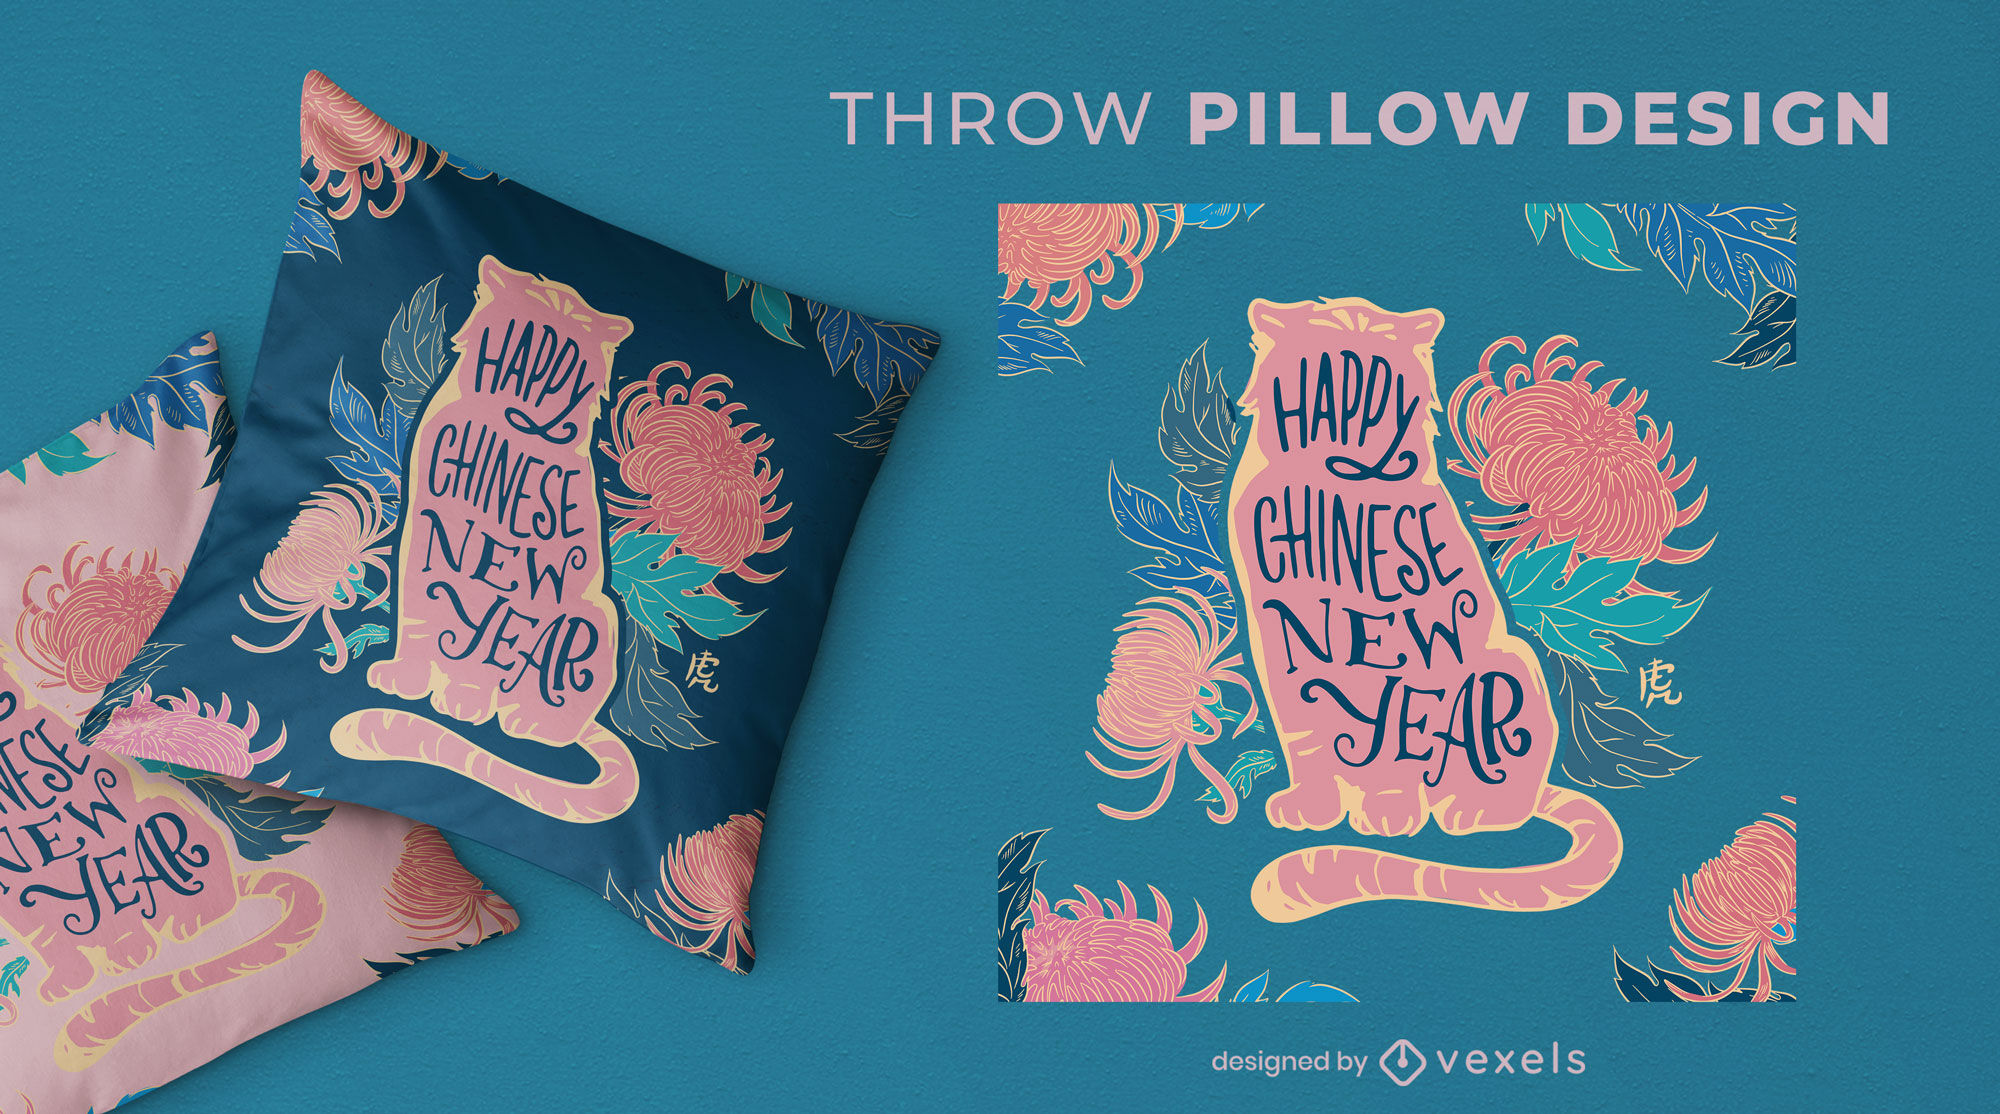 Chinese new year tiger throw pillow design